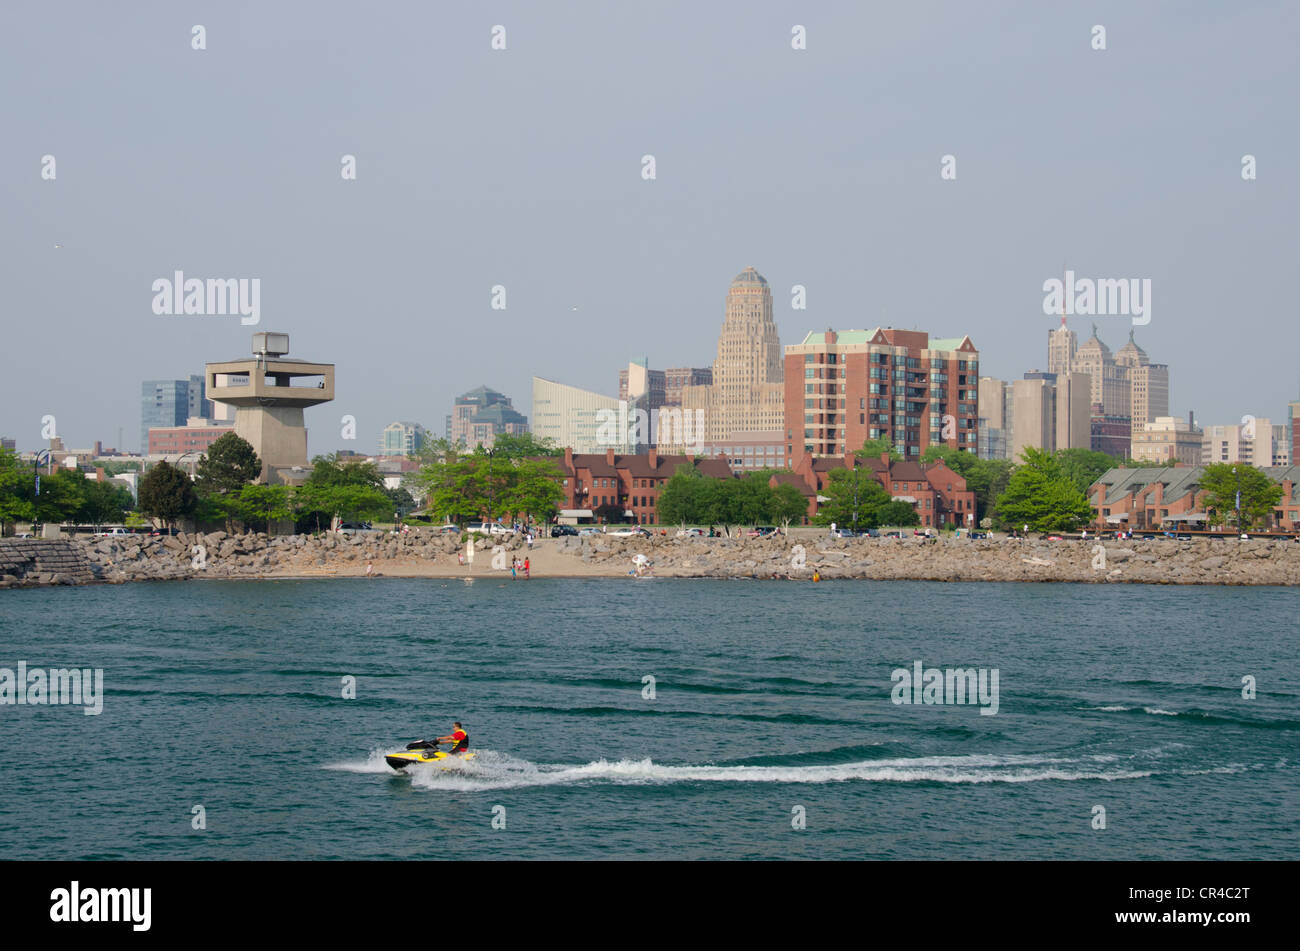 New York, Buffalo. Lake Erie view of historic downtown Buffalo skyline, art deco City Hall in distance. - Stock Image